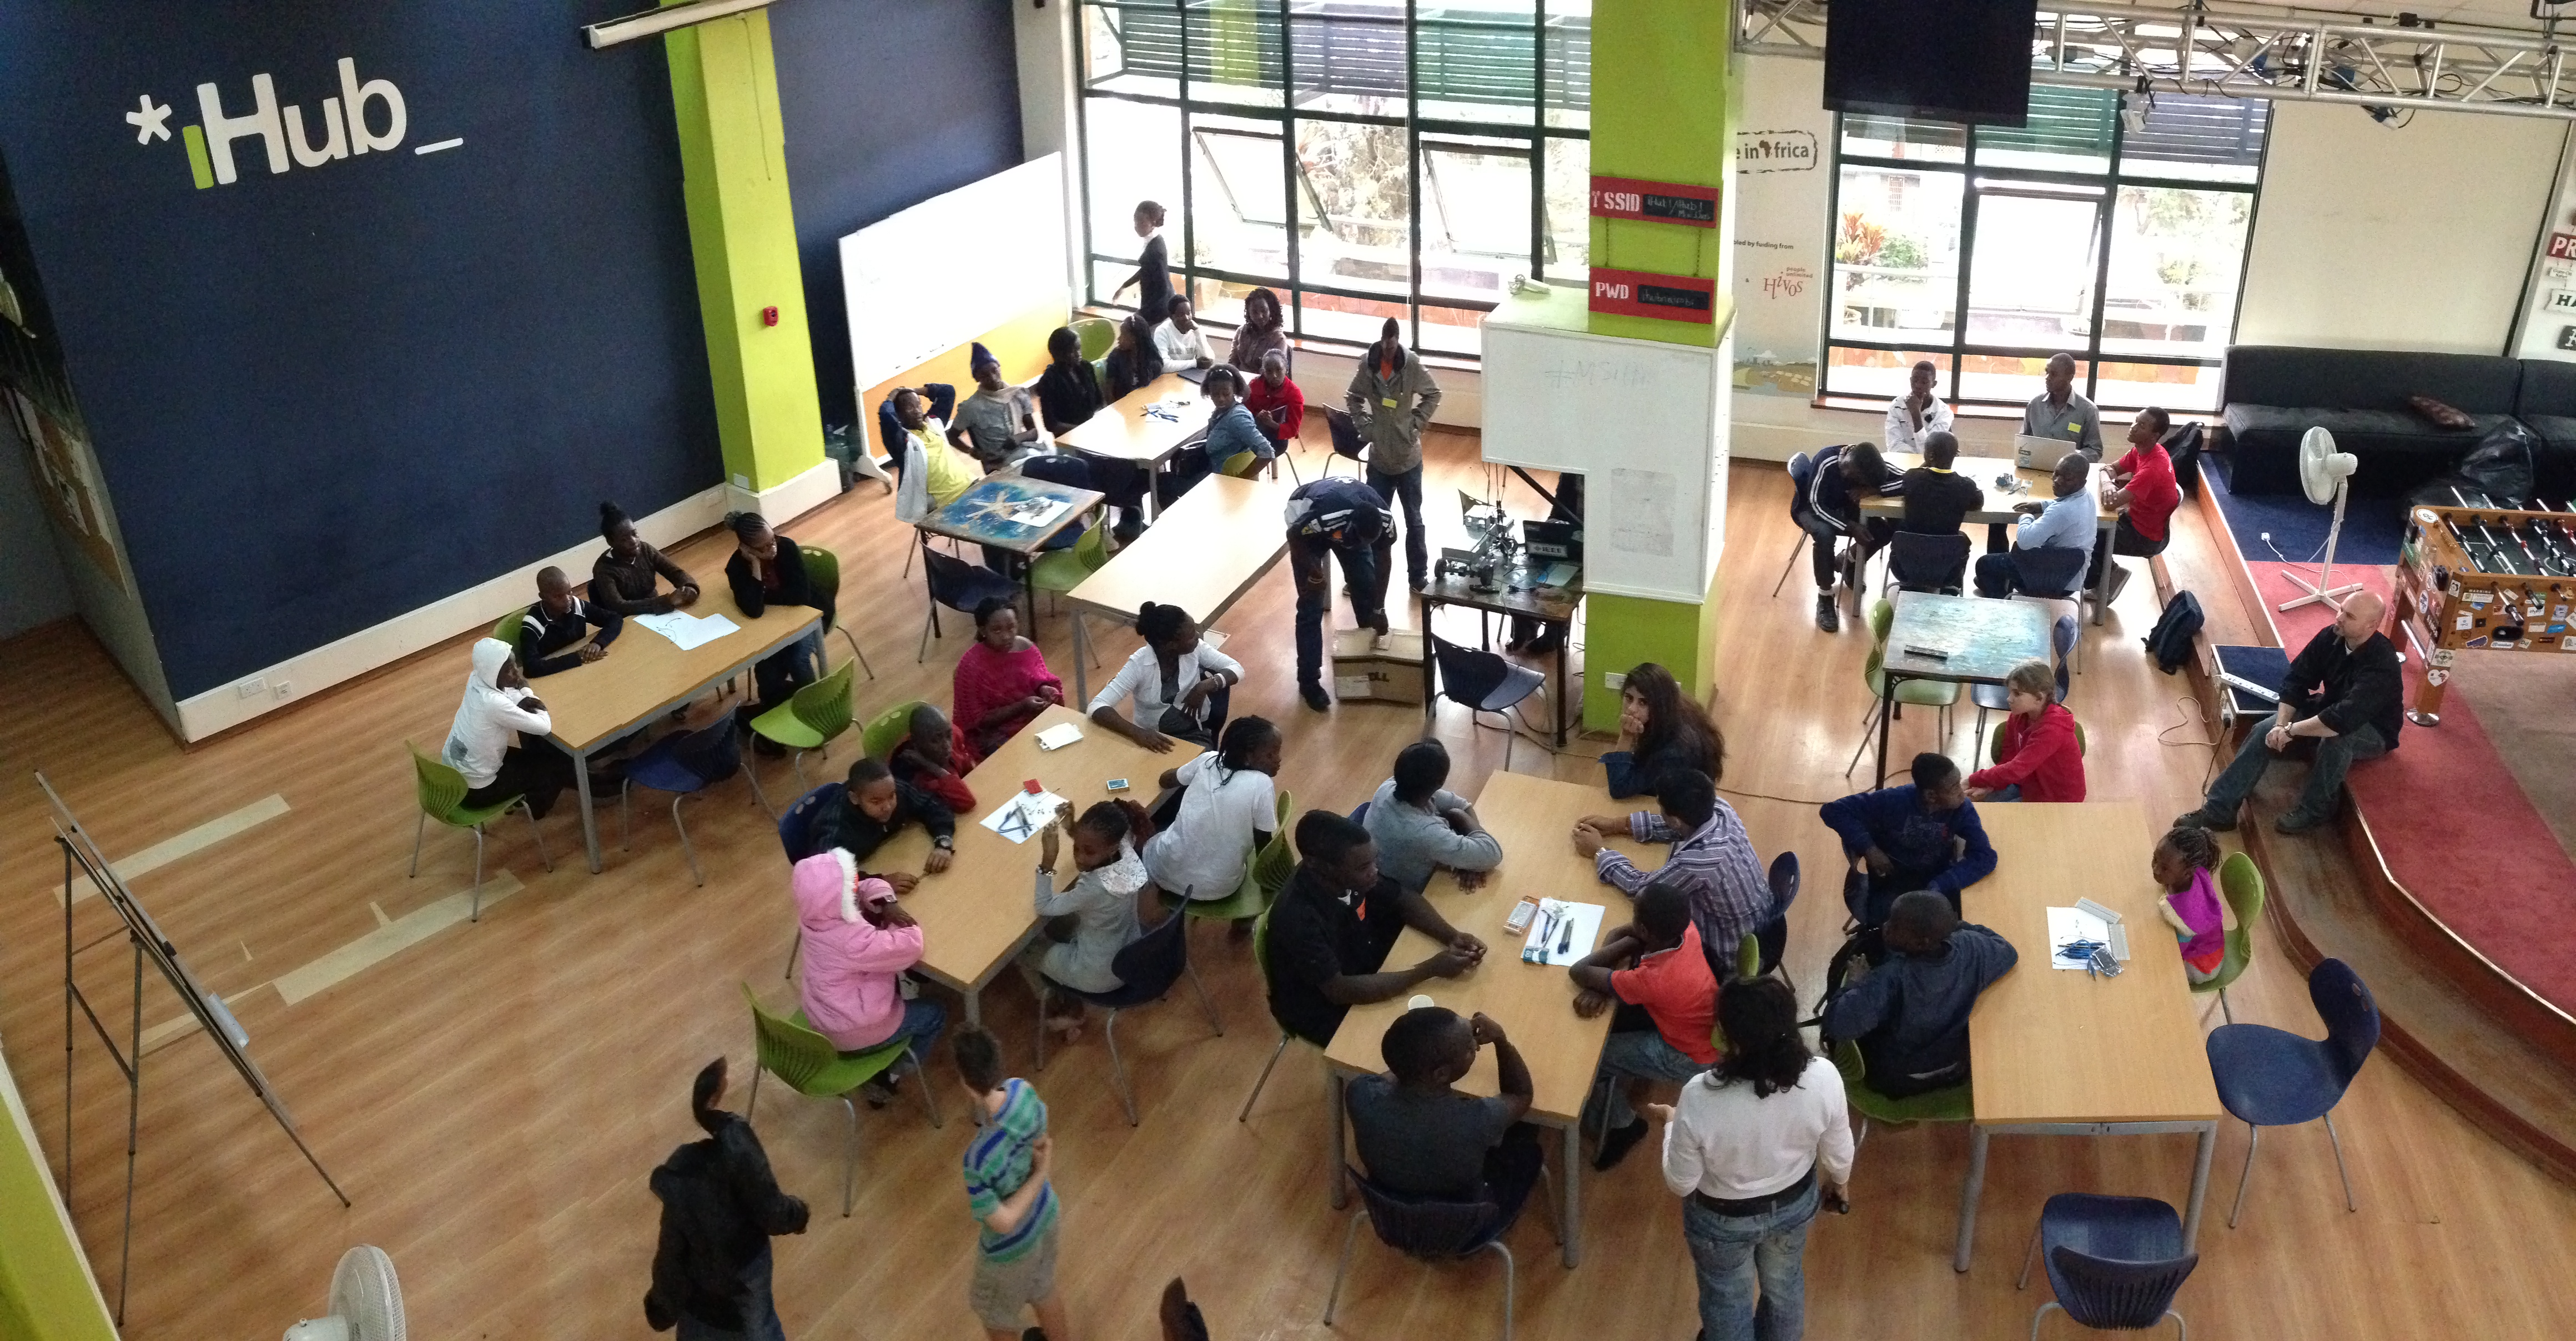 African tech hubs are starting to specialise to build a budding culture of innovation